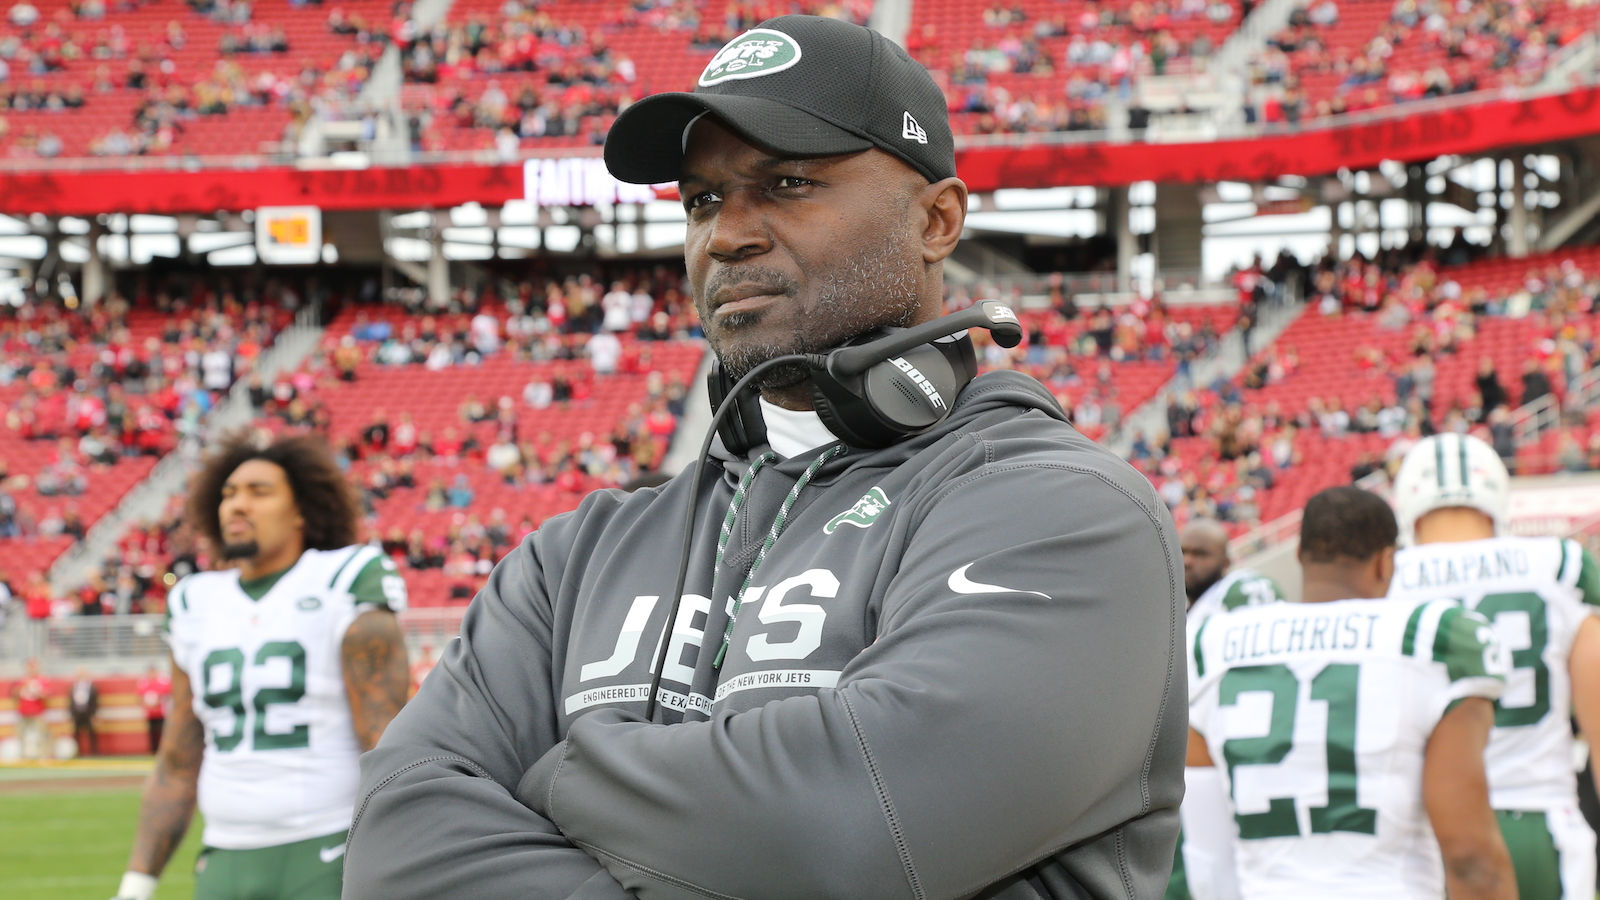 SANTA CLARA, CA - DECEMBER 11: Head Coach Todd Bowles of the New York Jets in action against the San Francisco 49ers at Levi's Stadium on December 11, 2016 in Santa Clara, California. (Photo by Al Pereira/Getty Images)